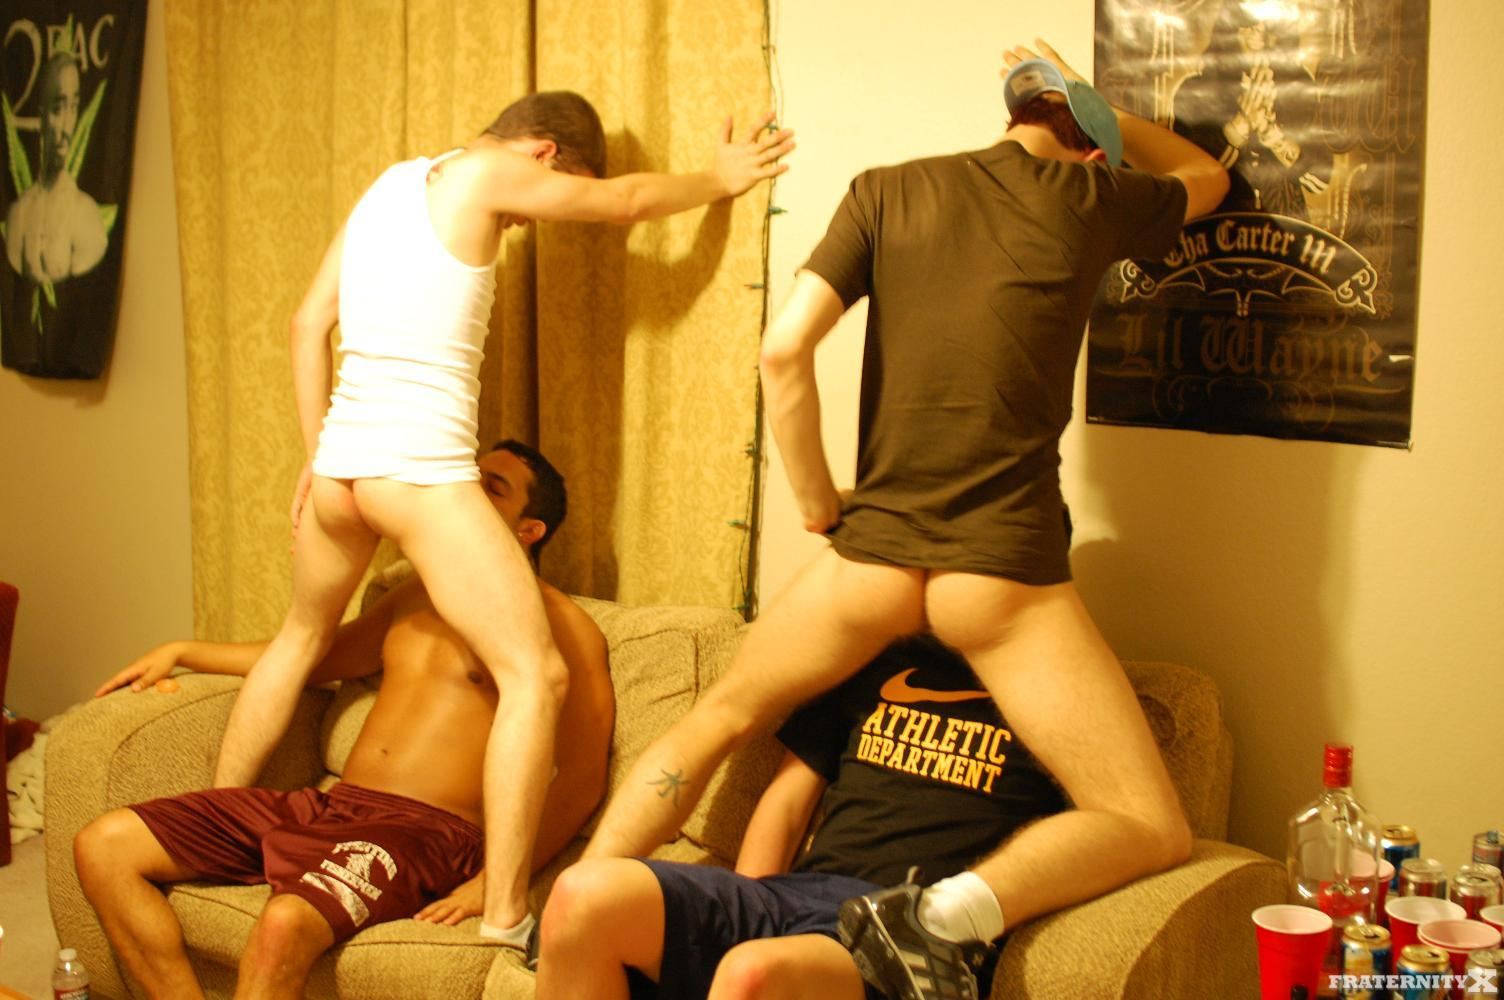 Fraternity X Pays The Rent Straight Amatuer Bareback Fucking 14 Real Amateur Straight Fraternity Boys Fucking Bareback